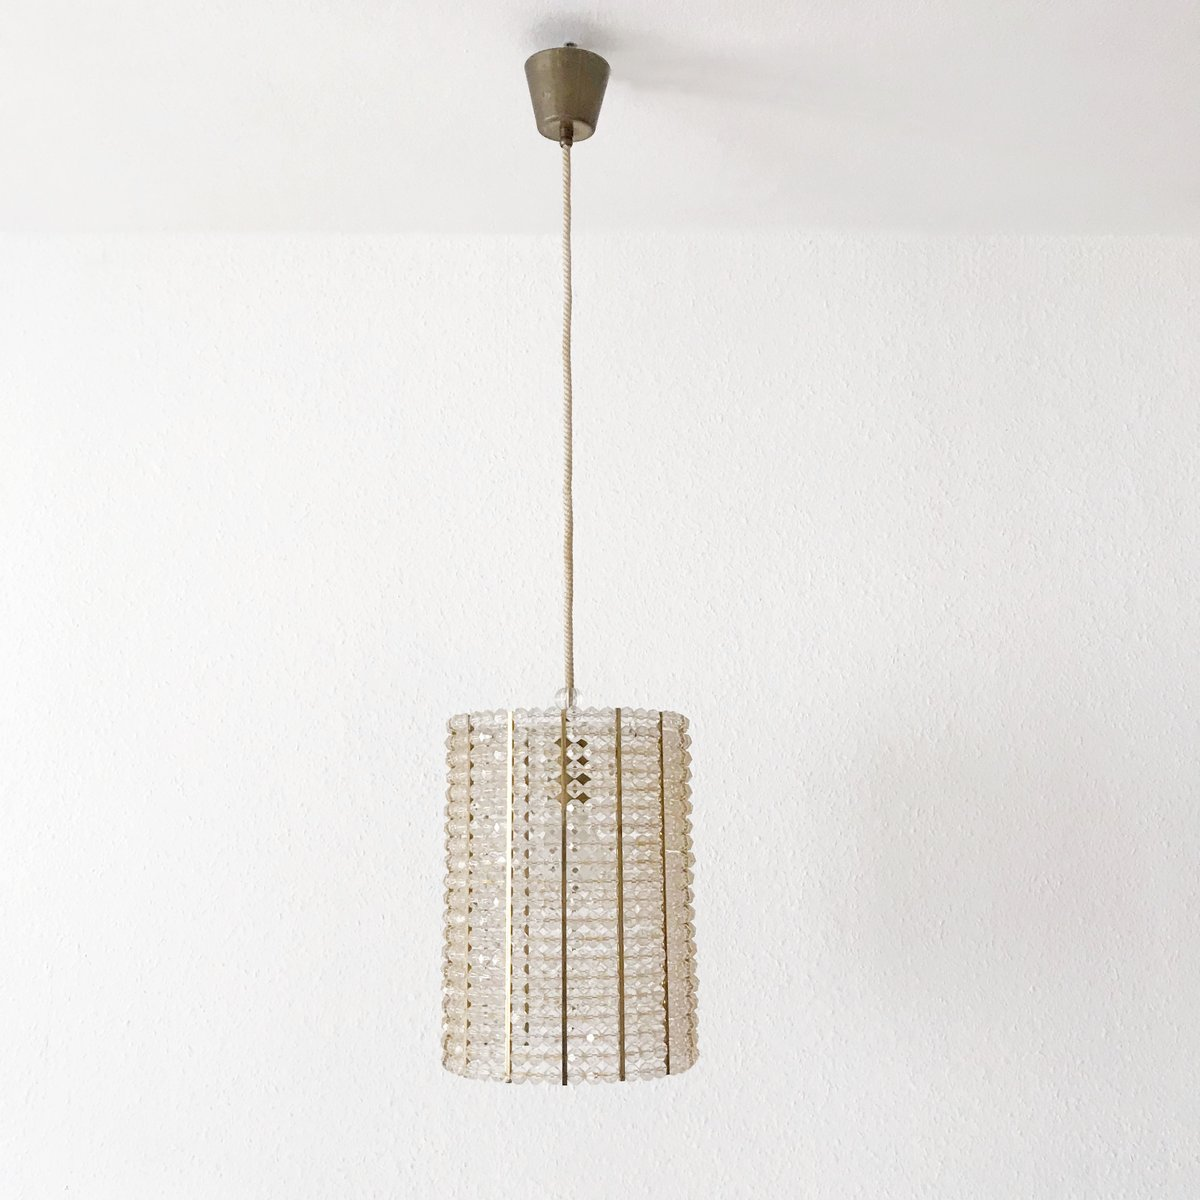 Mid century modern pendant lamp 1950s for sale at pamono for Mid century modern hanging lamp